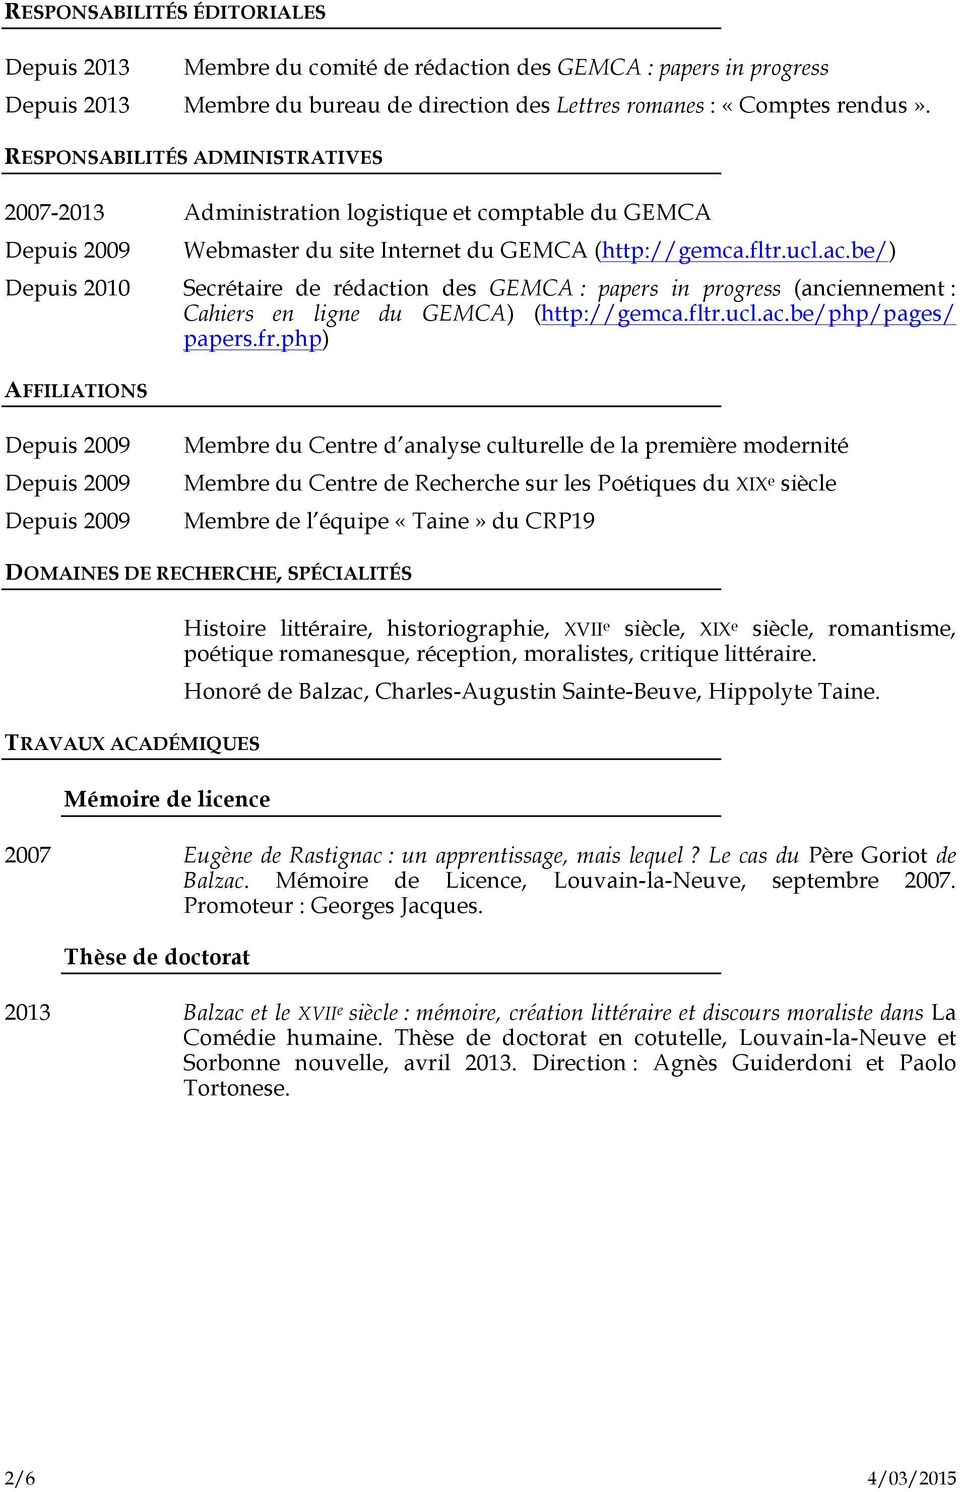 be/) Depuis 2010 Secrétaire de rédaction des GEMCA : papers in progress (anciennement : Cahiers en ligne du GEMCA) (http://gemca.fltr.ucl.ac.be/php/pages/ papers.fr.